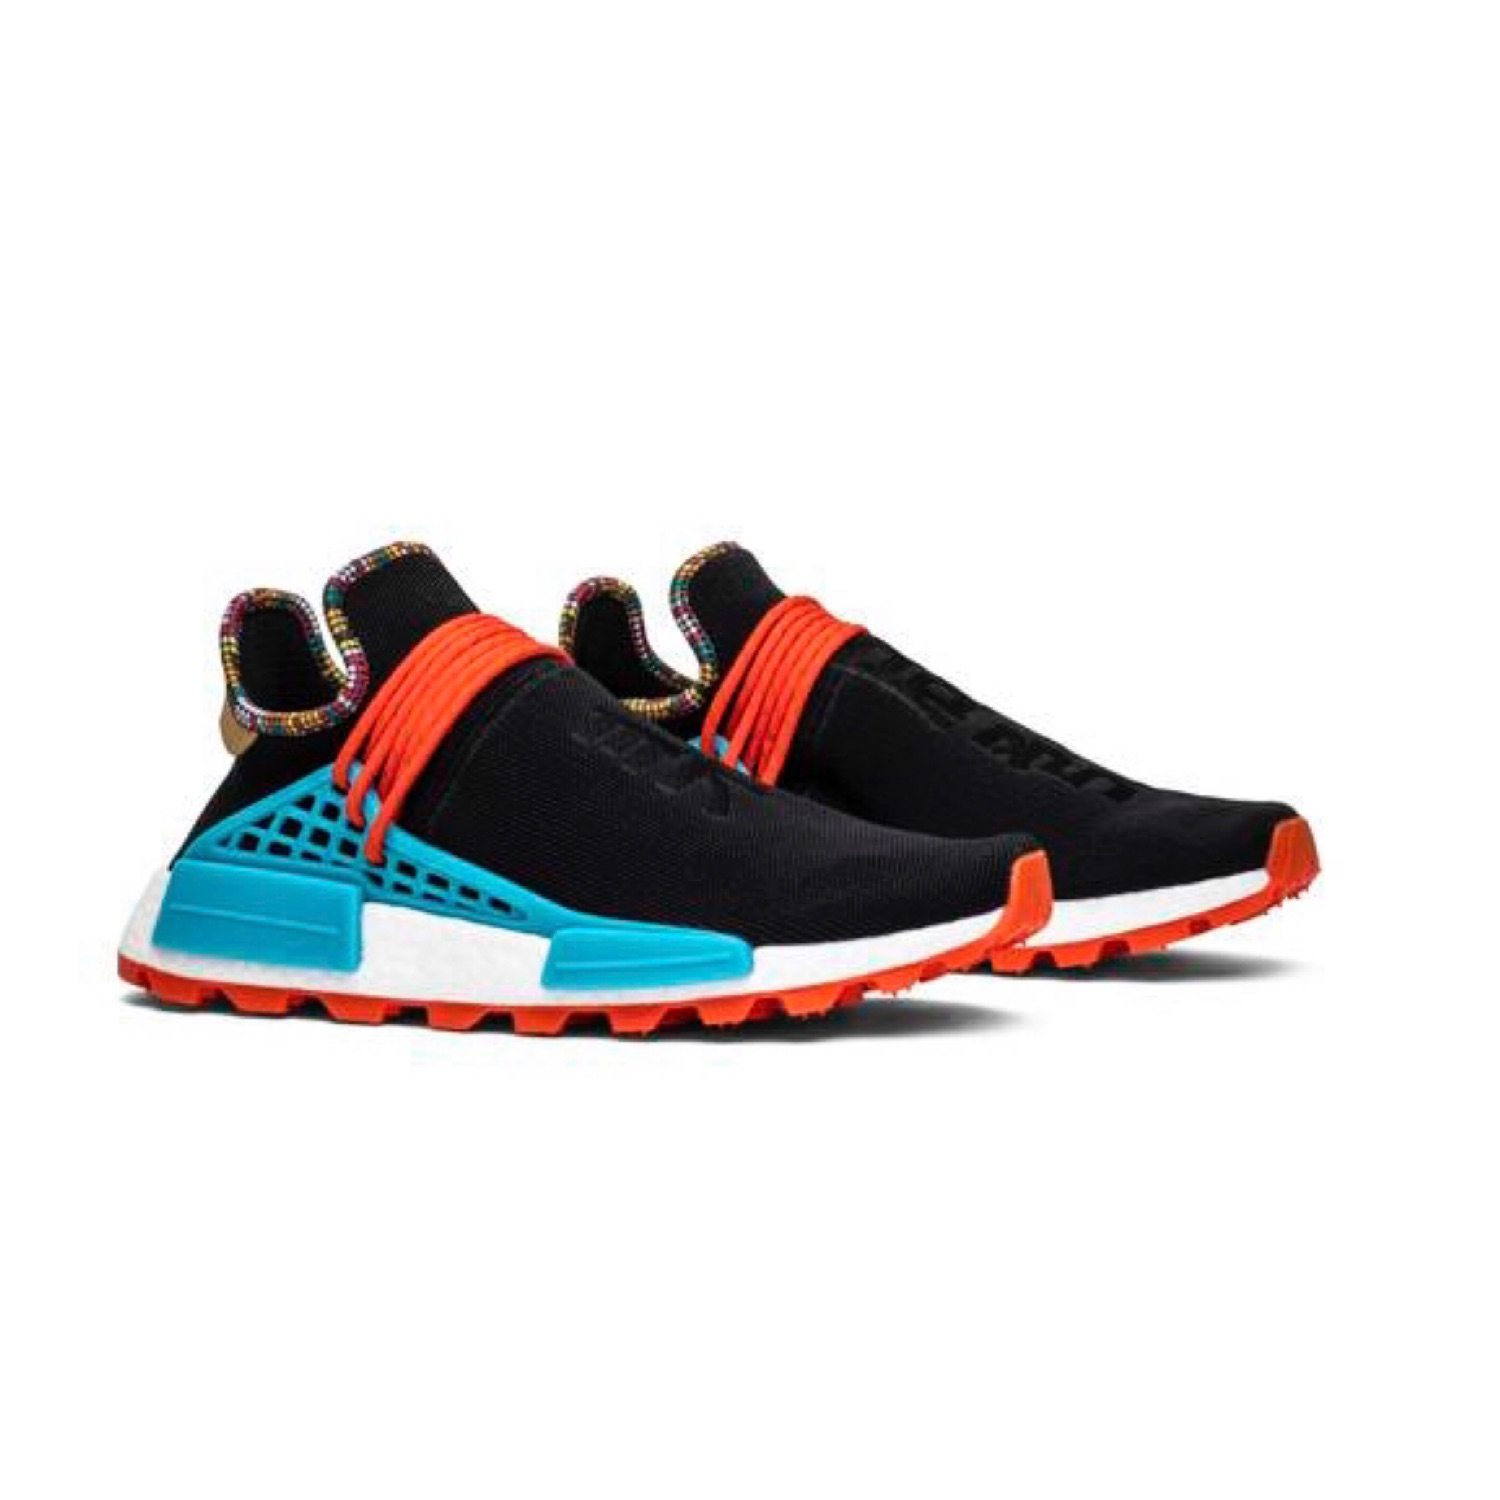 reputable site 58a42 becf7 Pharrell Williams X Adidas Nmd Human Race